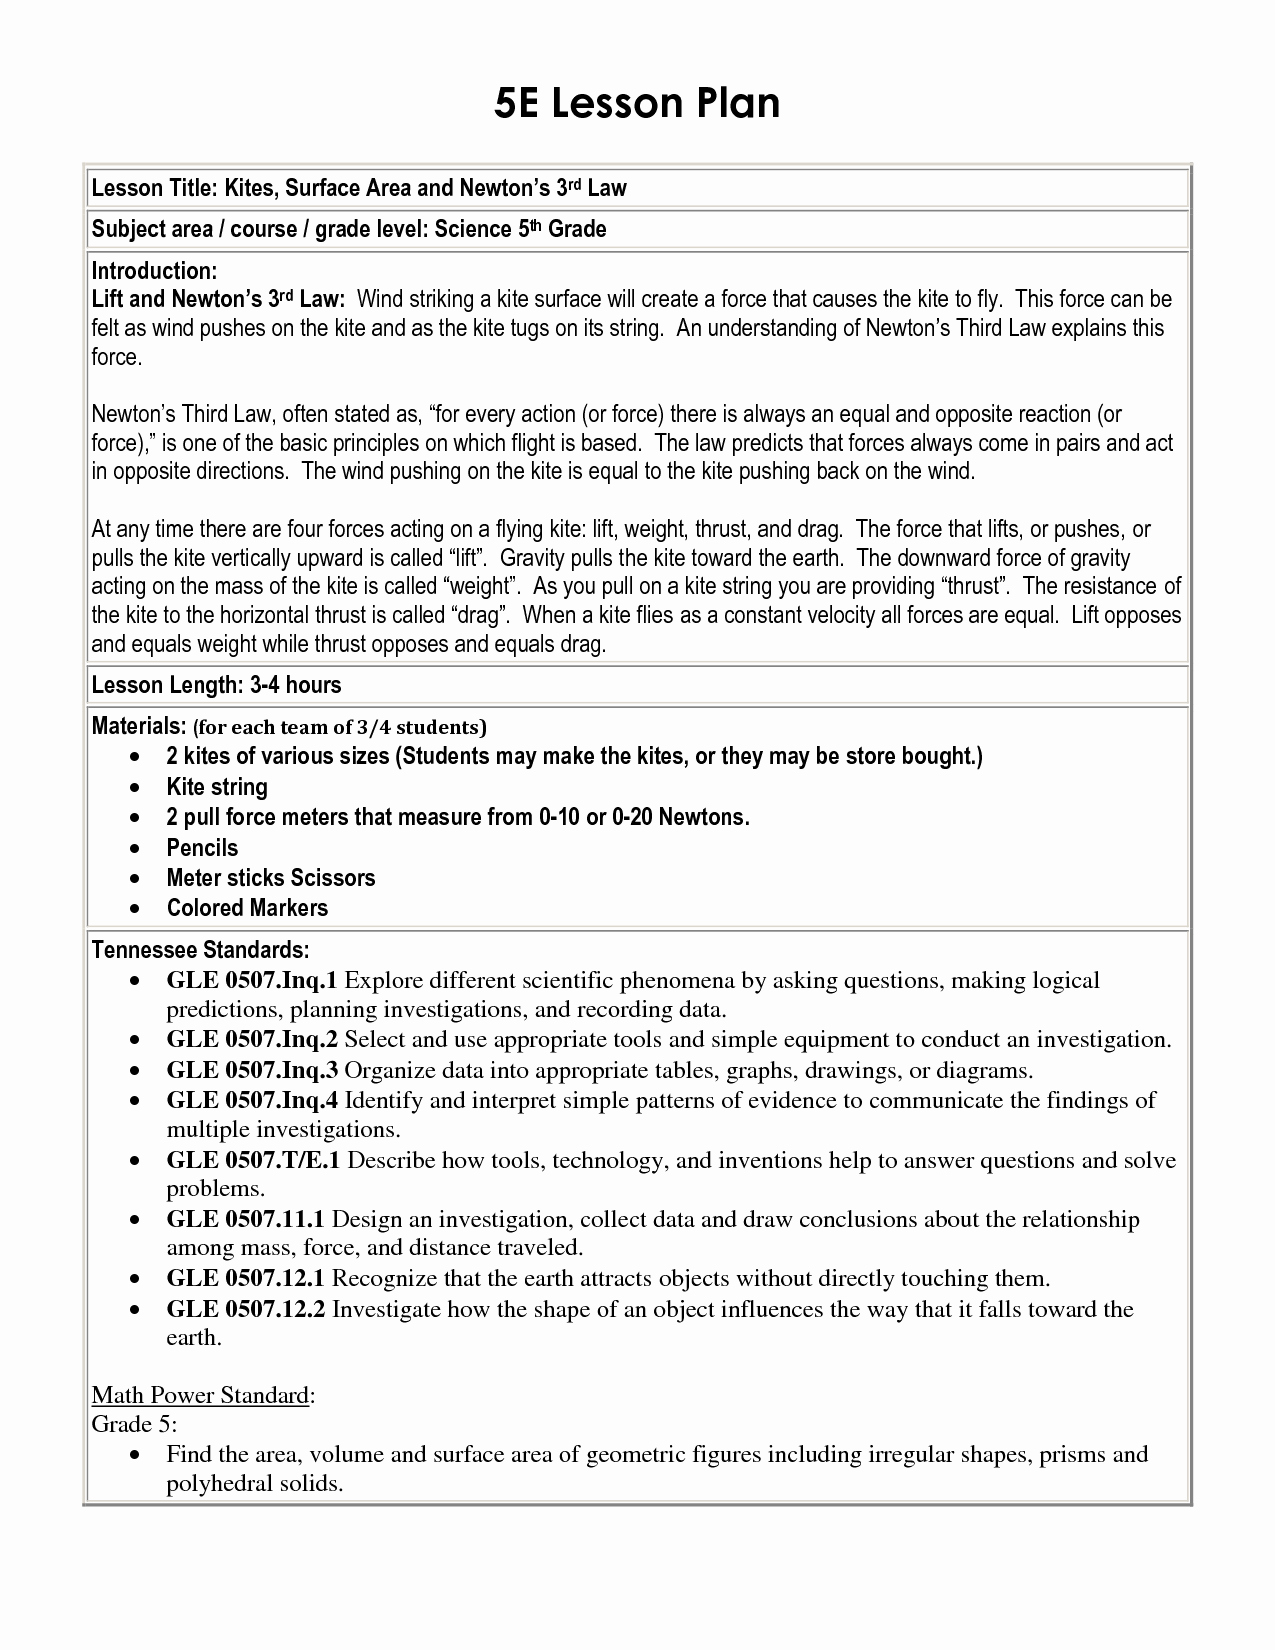 Science Lesson Plan Template Luxury 5 E Lesson Plan Template